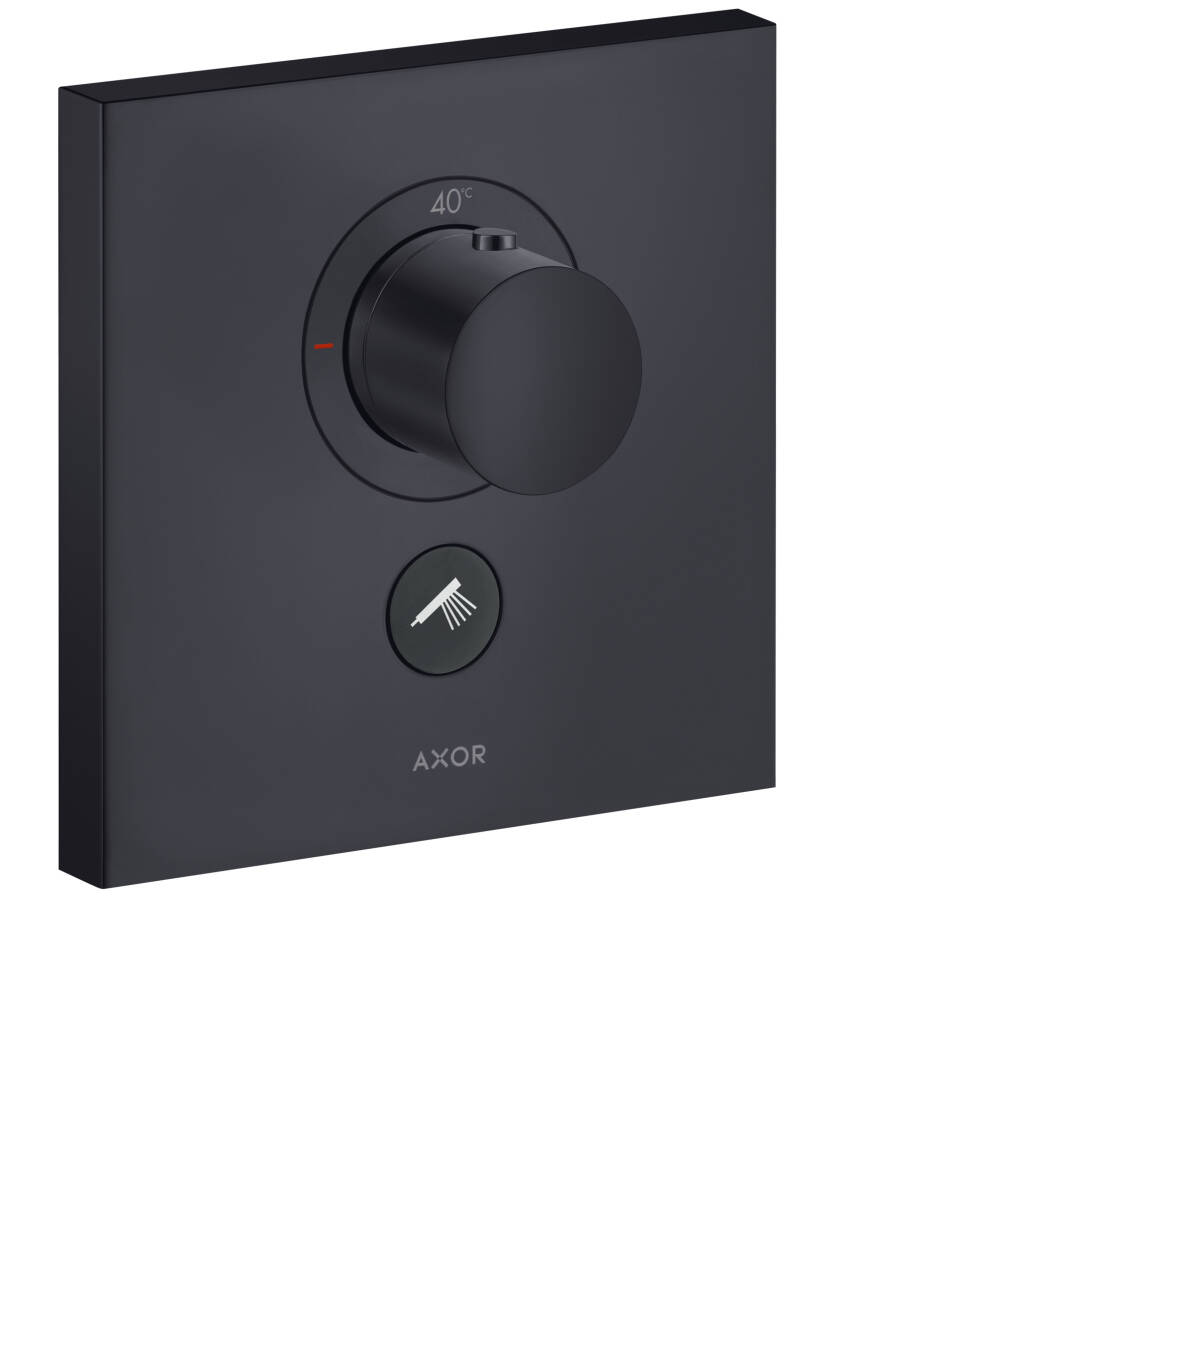 Thermostat HighFlow for concealed installation square for 1 function and additional outlet, Satin Black, 36716350